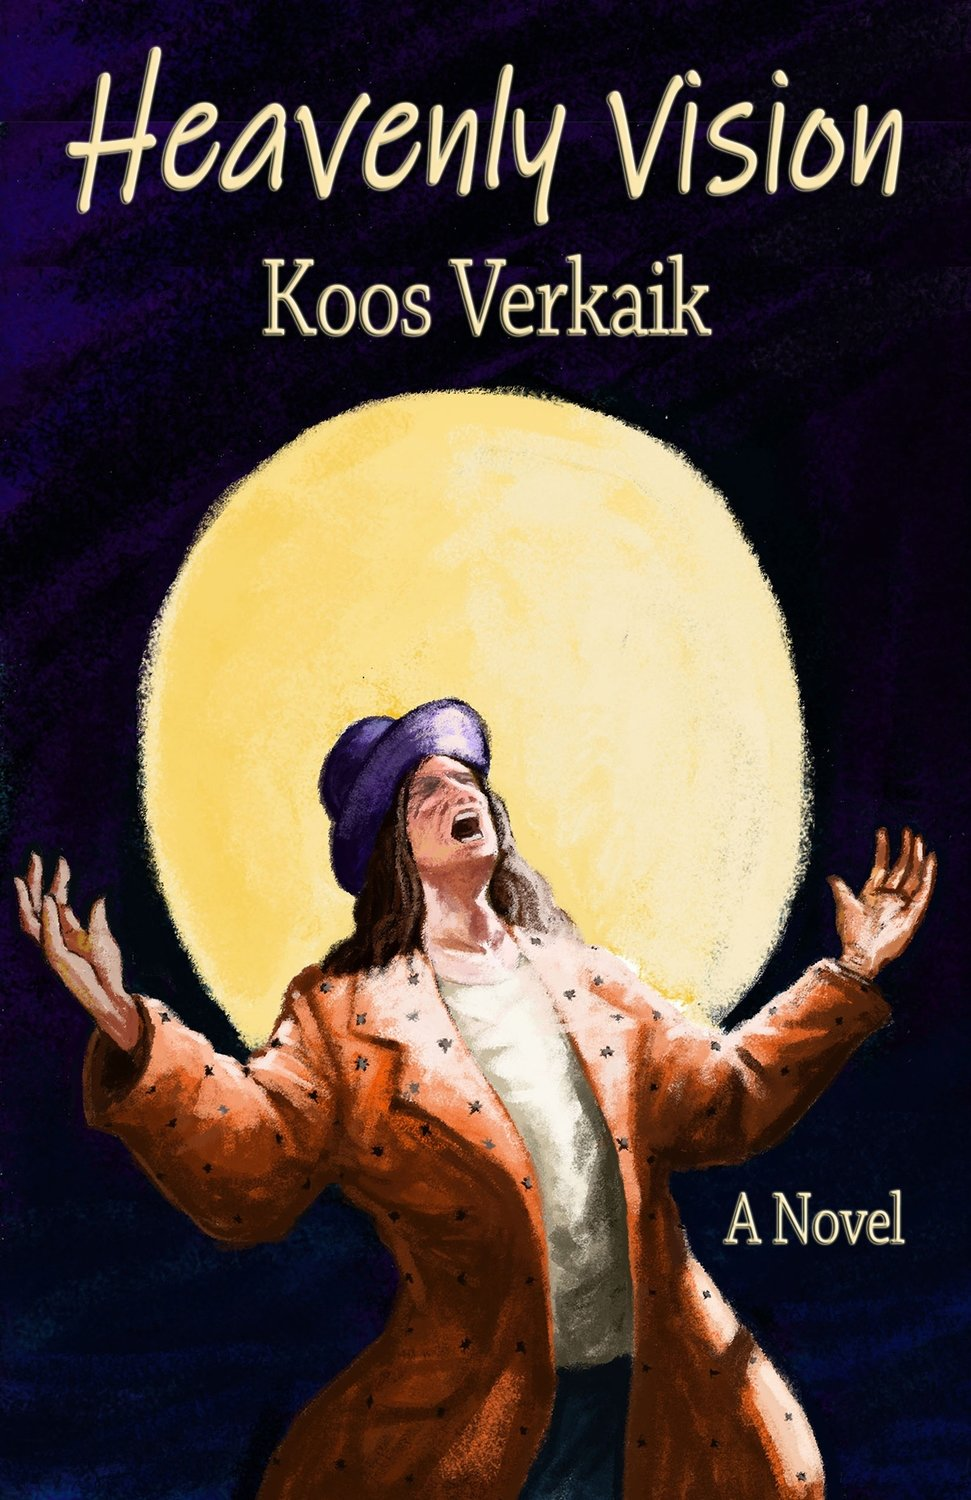 Koos Verkaik's excitingly mysterious novel Heavenly Vision